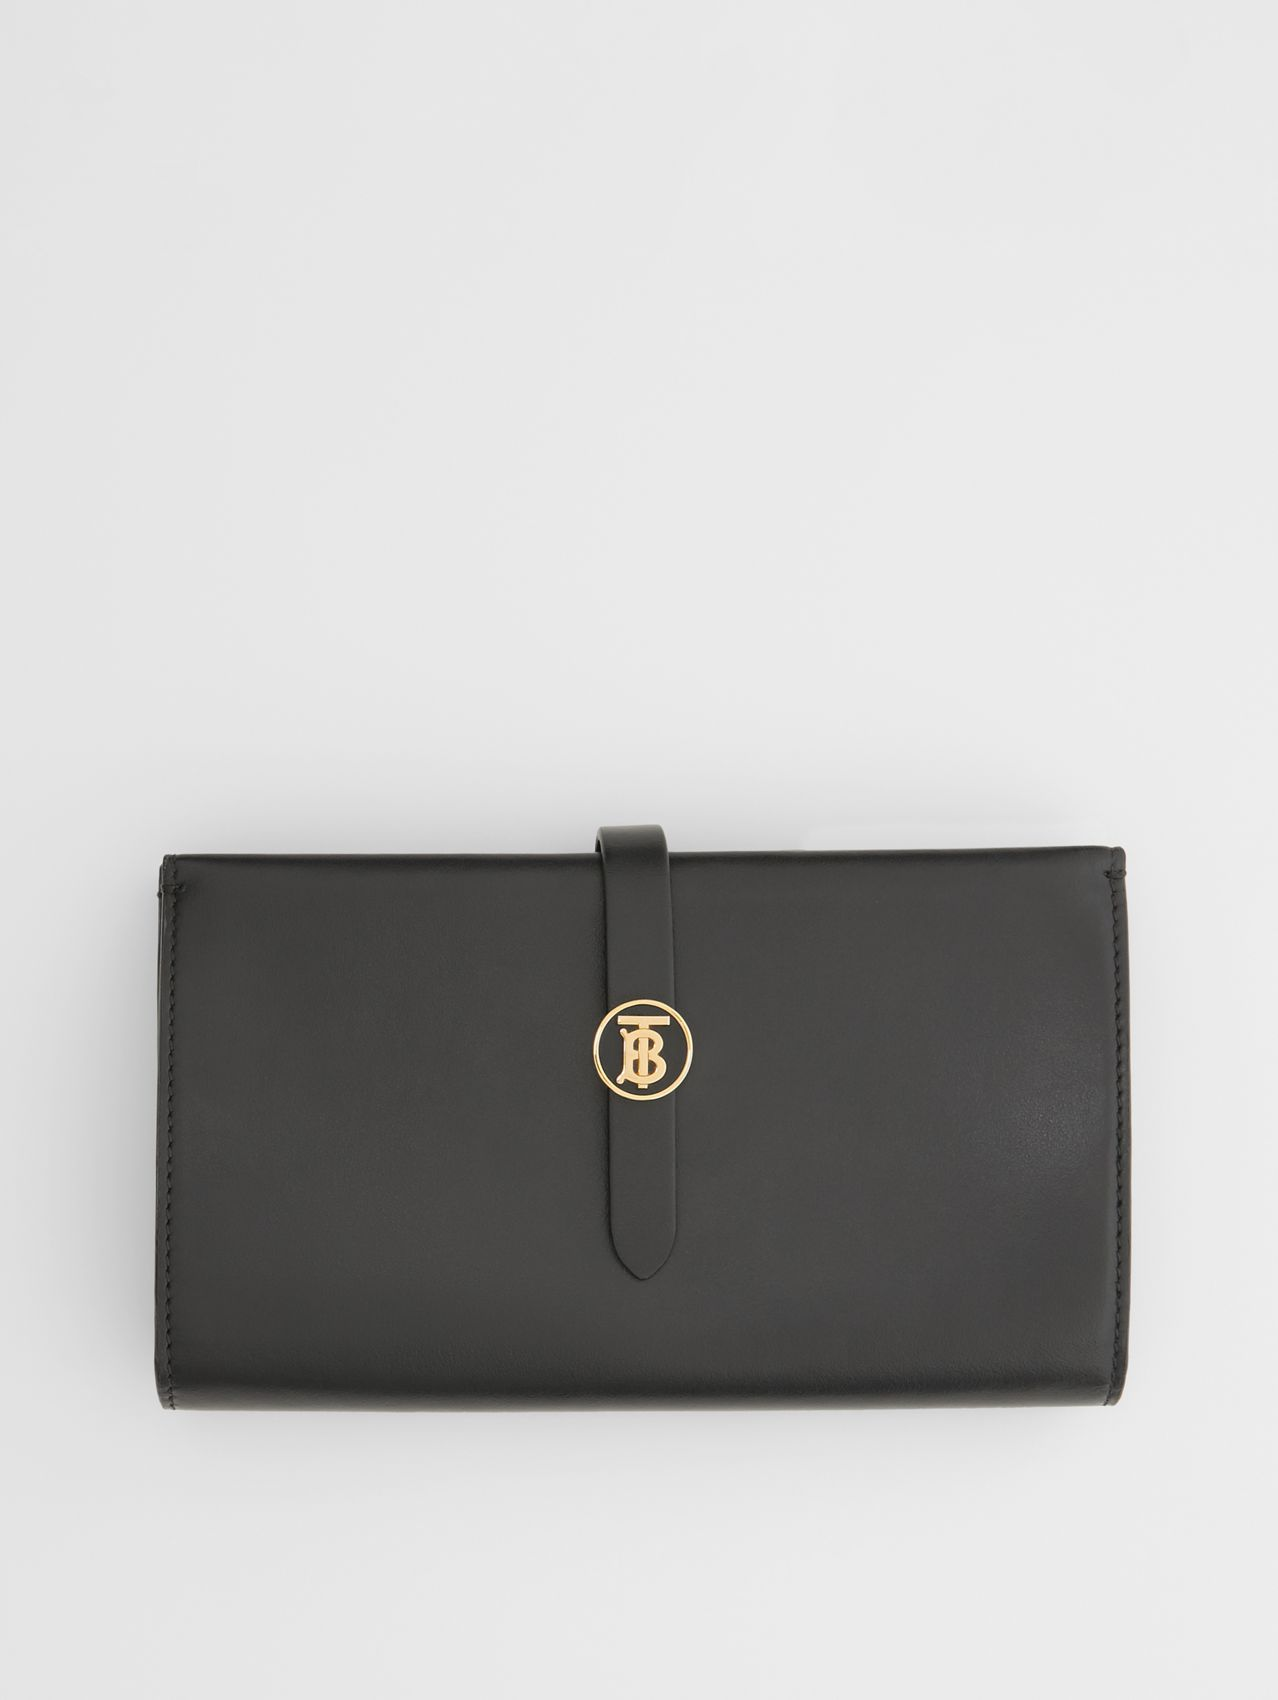 Monogram Motif Leather Folding Wallet in Black